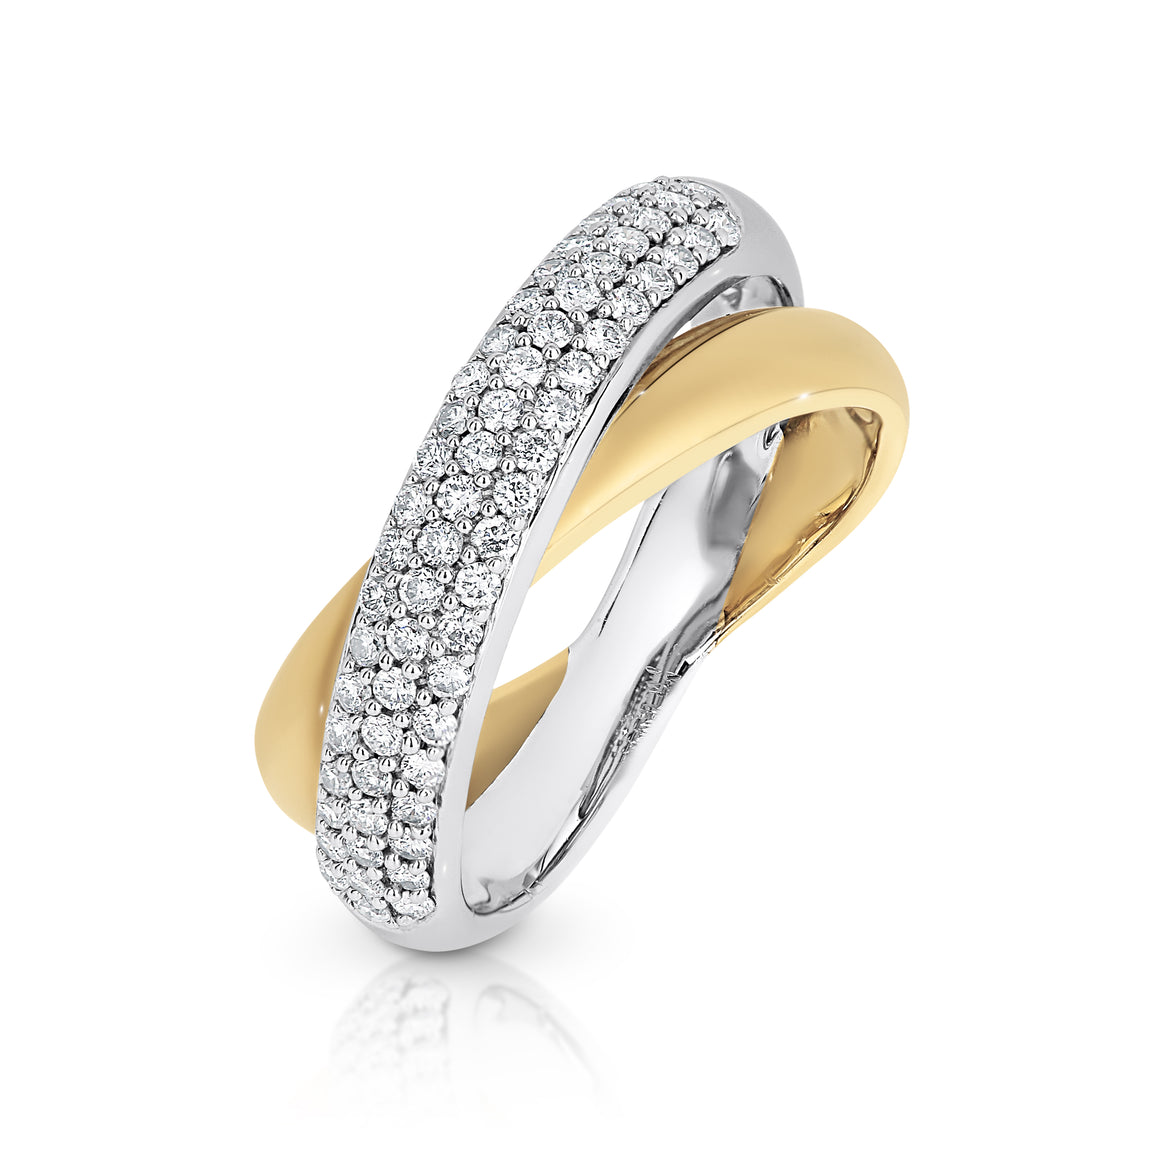 White & Yellow Gold Diamond 'Lanus' Ring - Gemma Stone  ABN:51 621 127 866